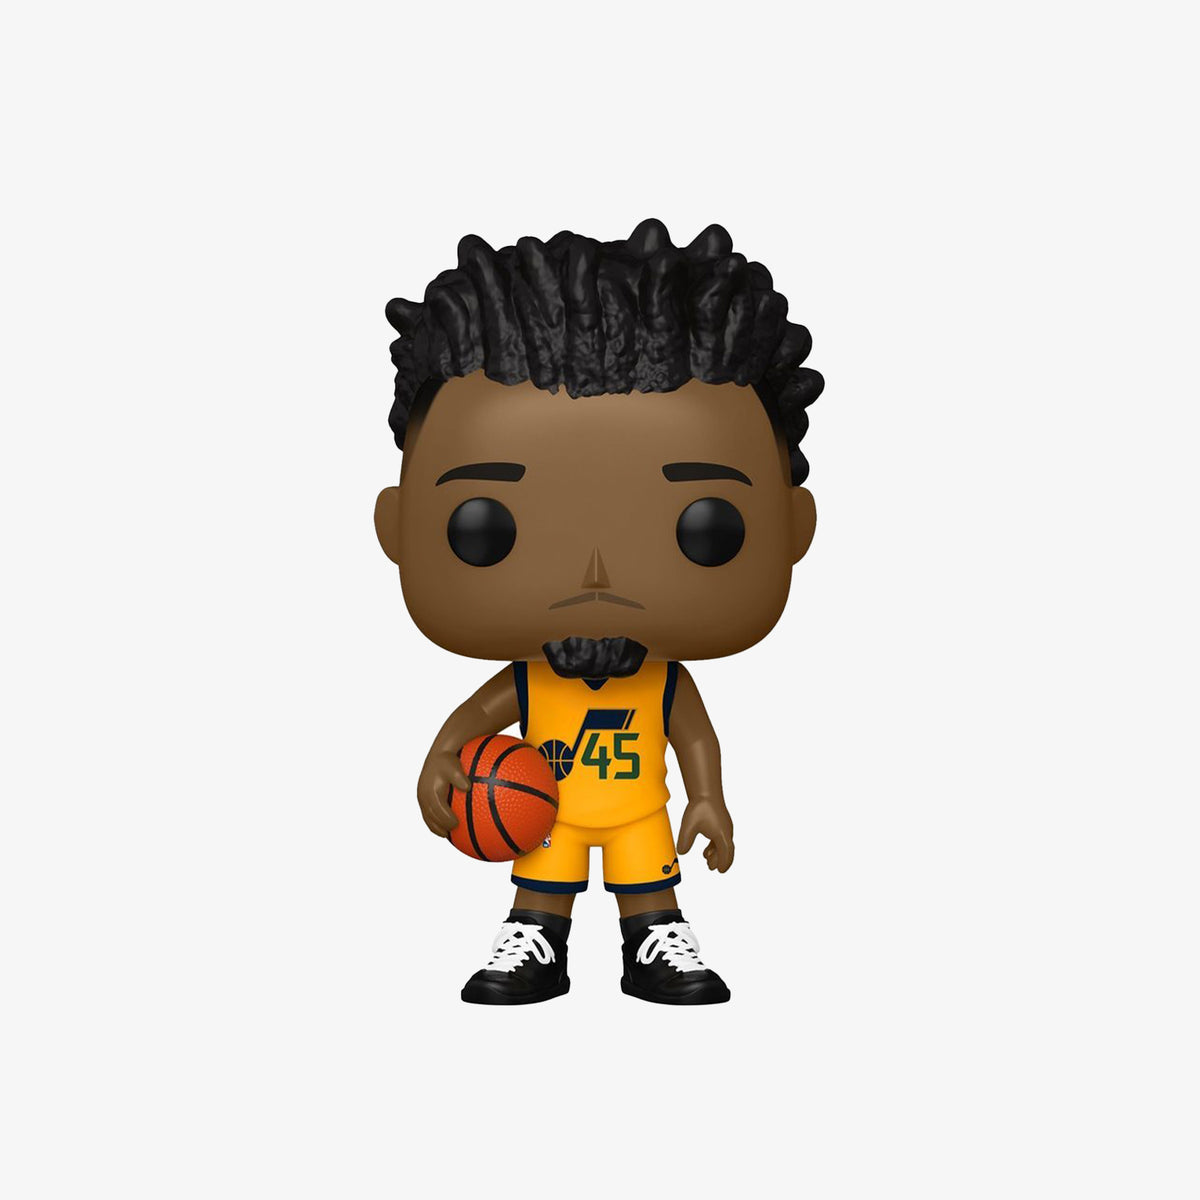 Donovan Mitchell Utah Jazz NBA Pop Figure - Statement - Yellow